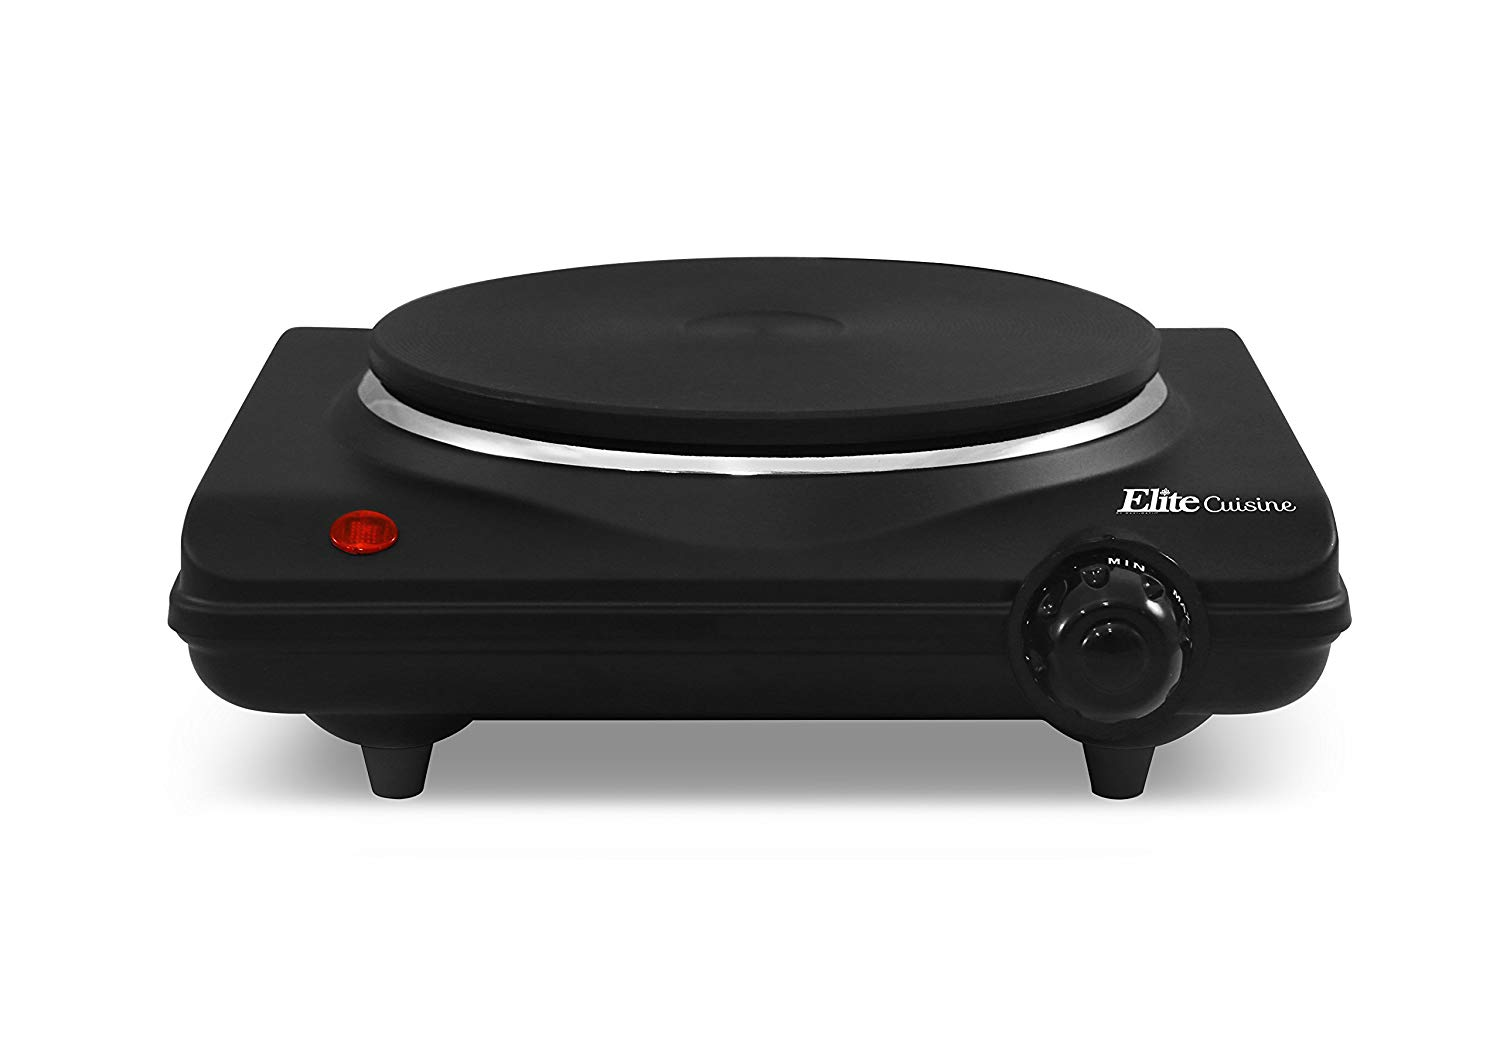 ELITE CUISINE ESB-301BF ELECTRIC SINGLE BURNER HOT PLATE